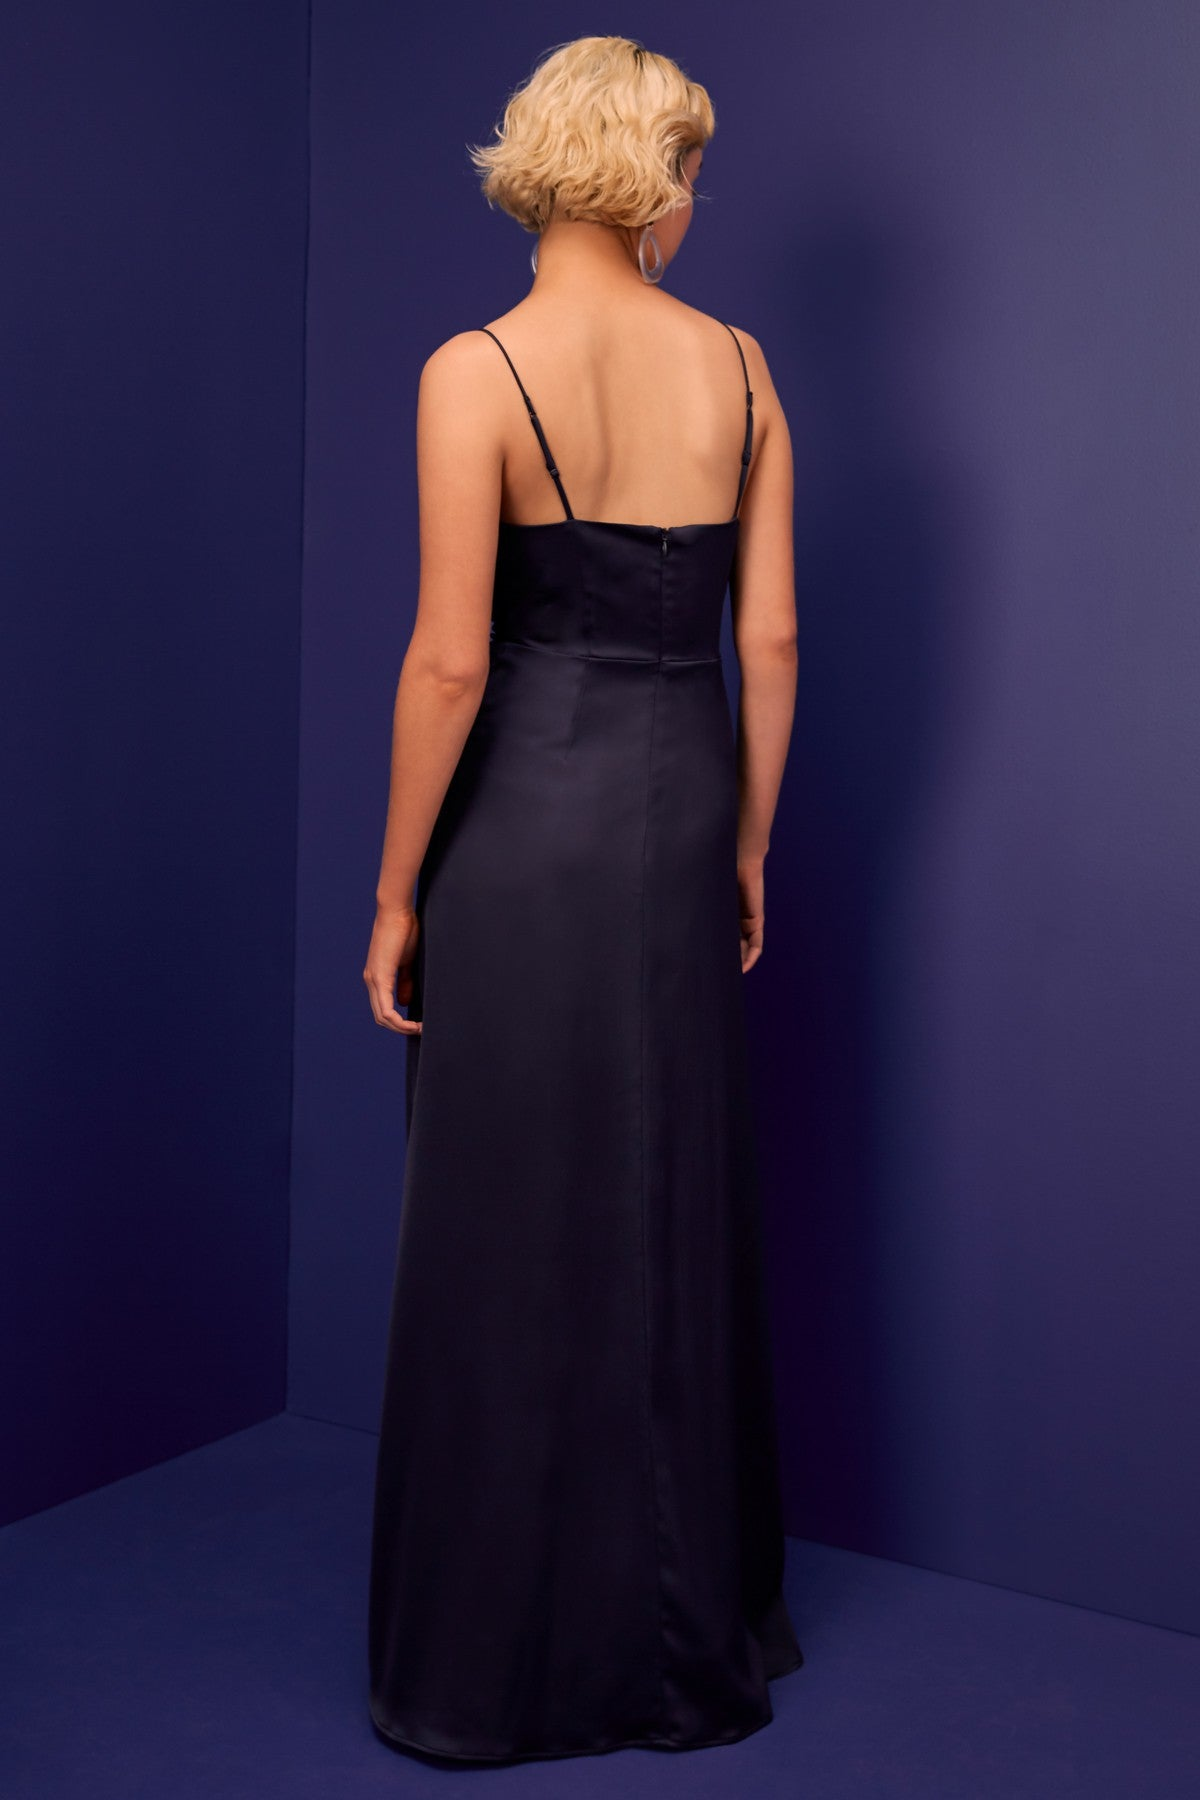 JAGGED GOWN navy